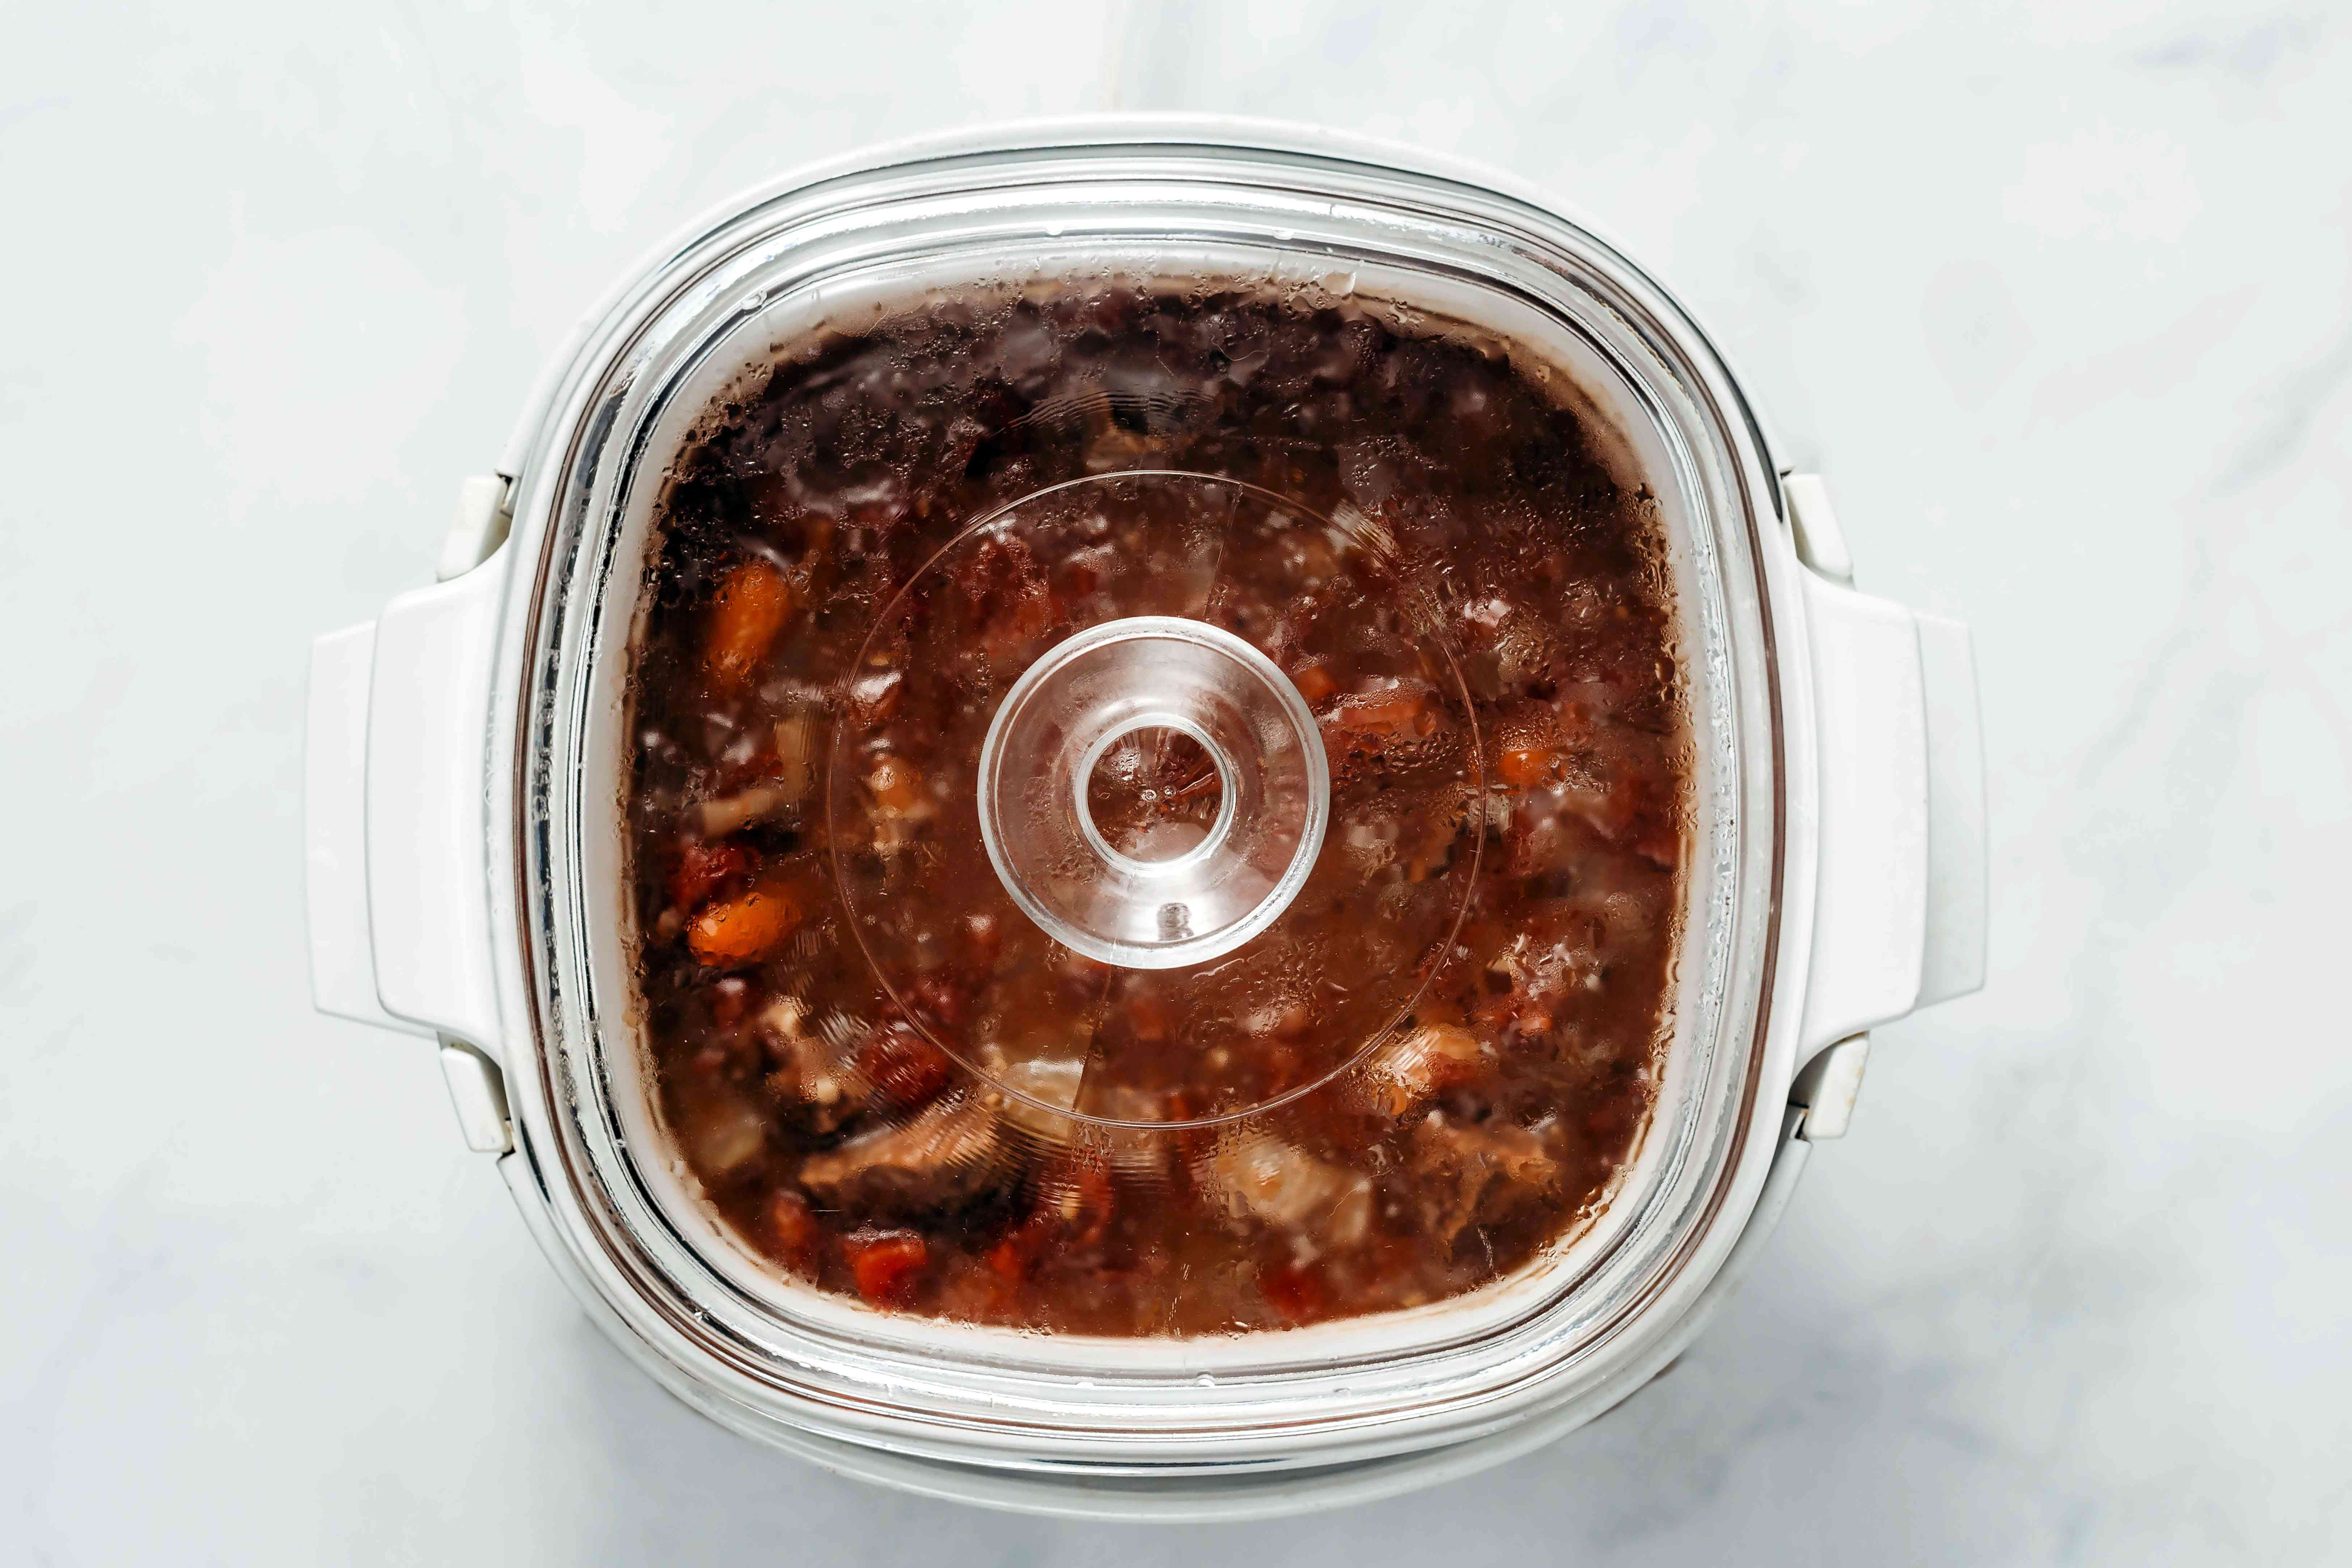 beef stew cooking in a Crockpot